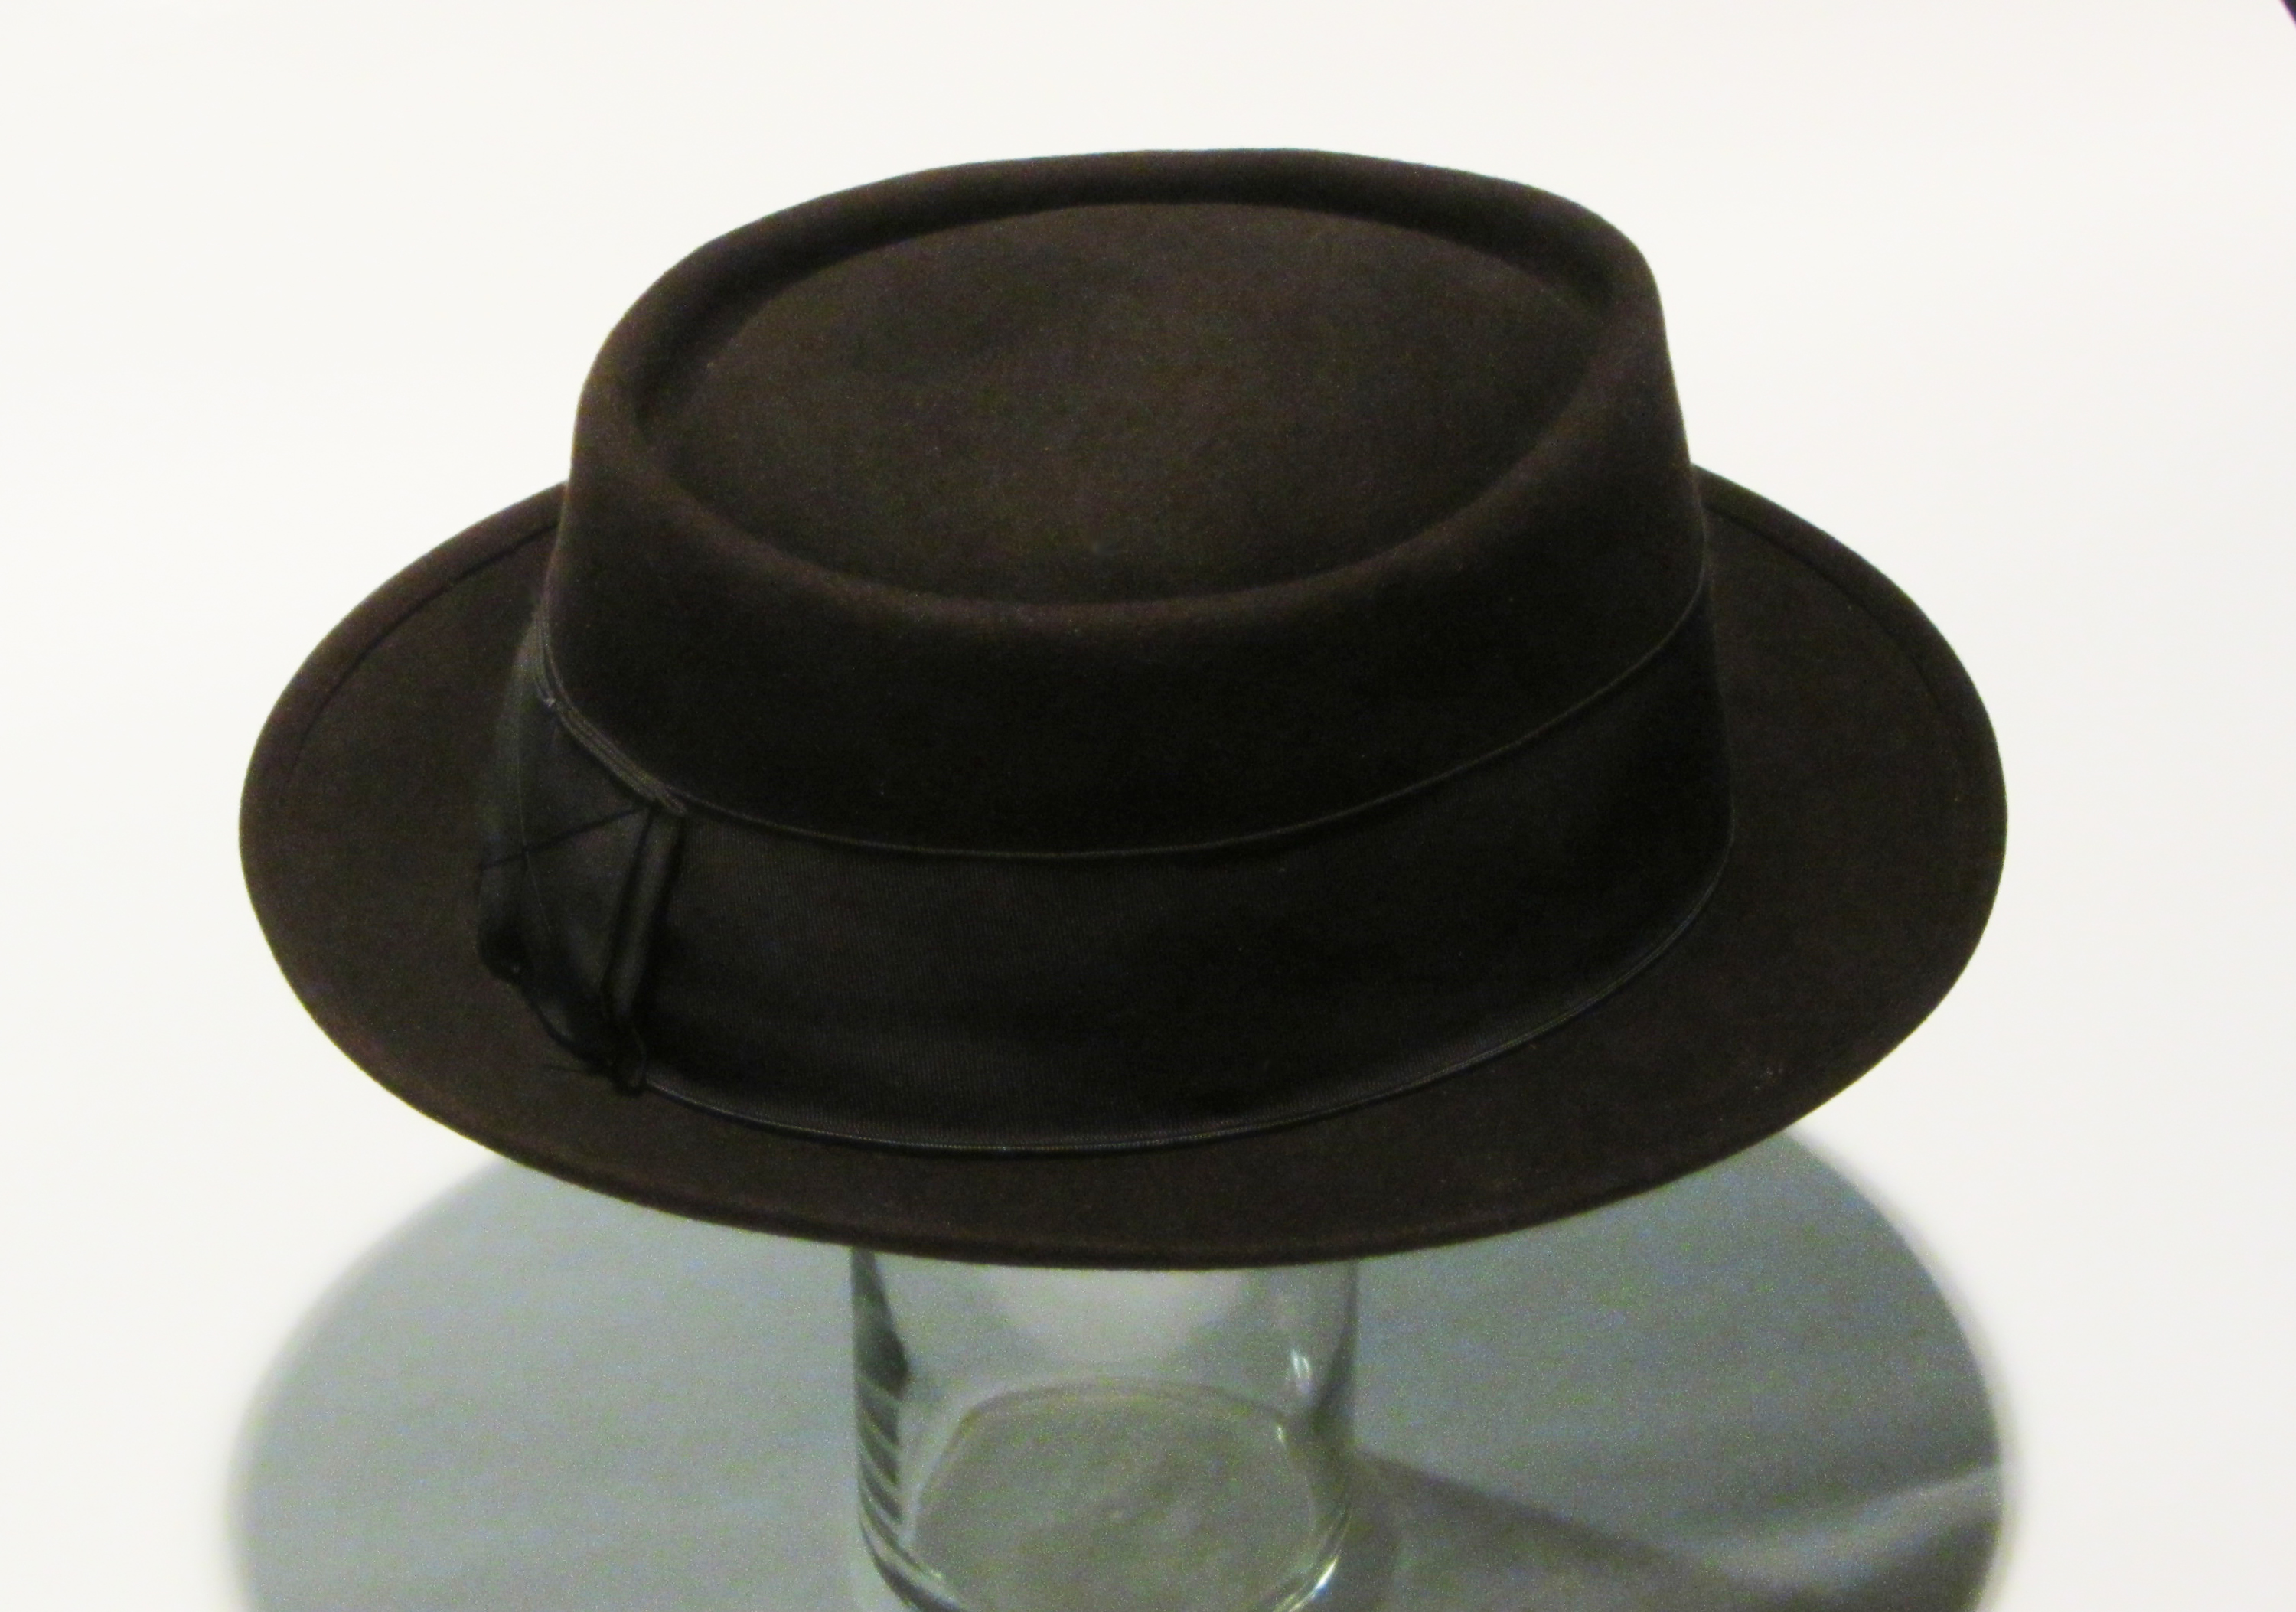 d57d78d71fe Pork pie hat - Wikipedia